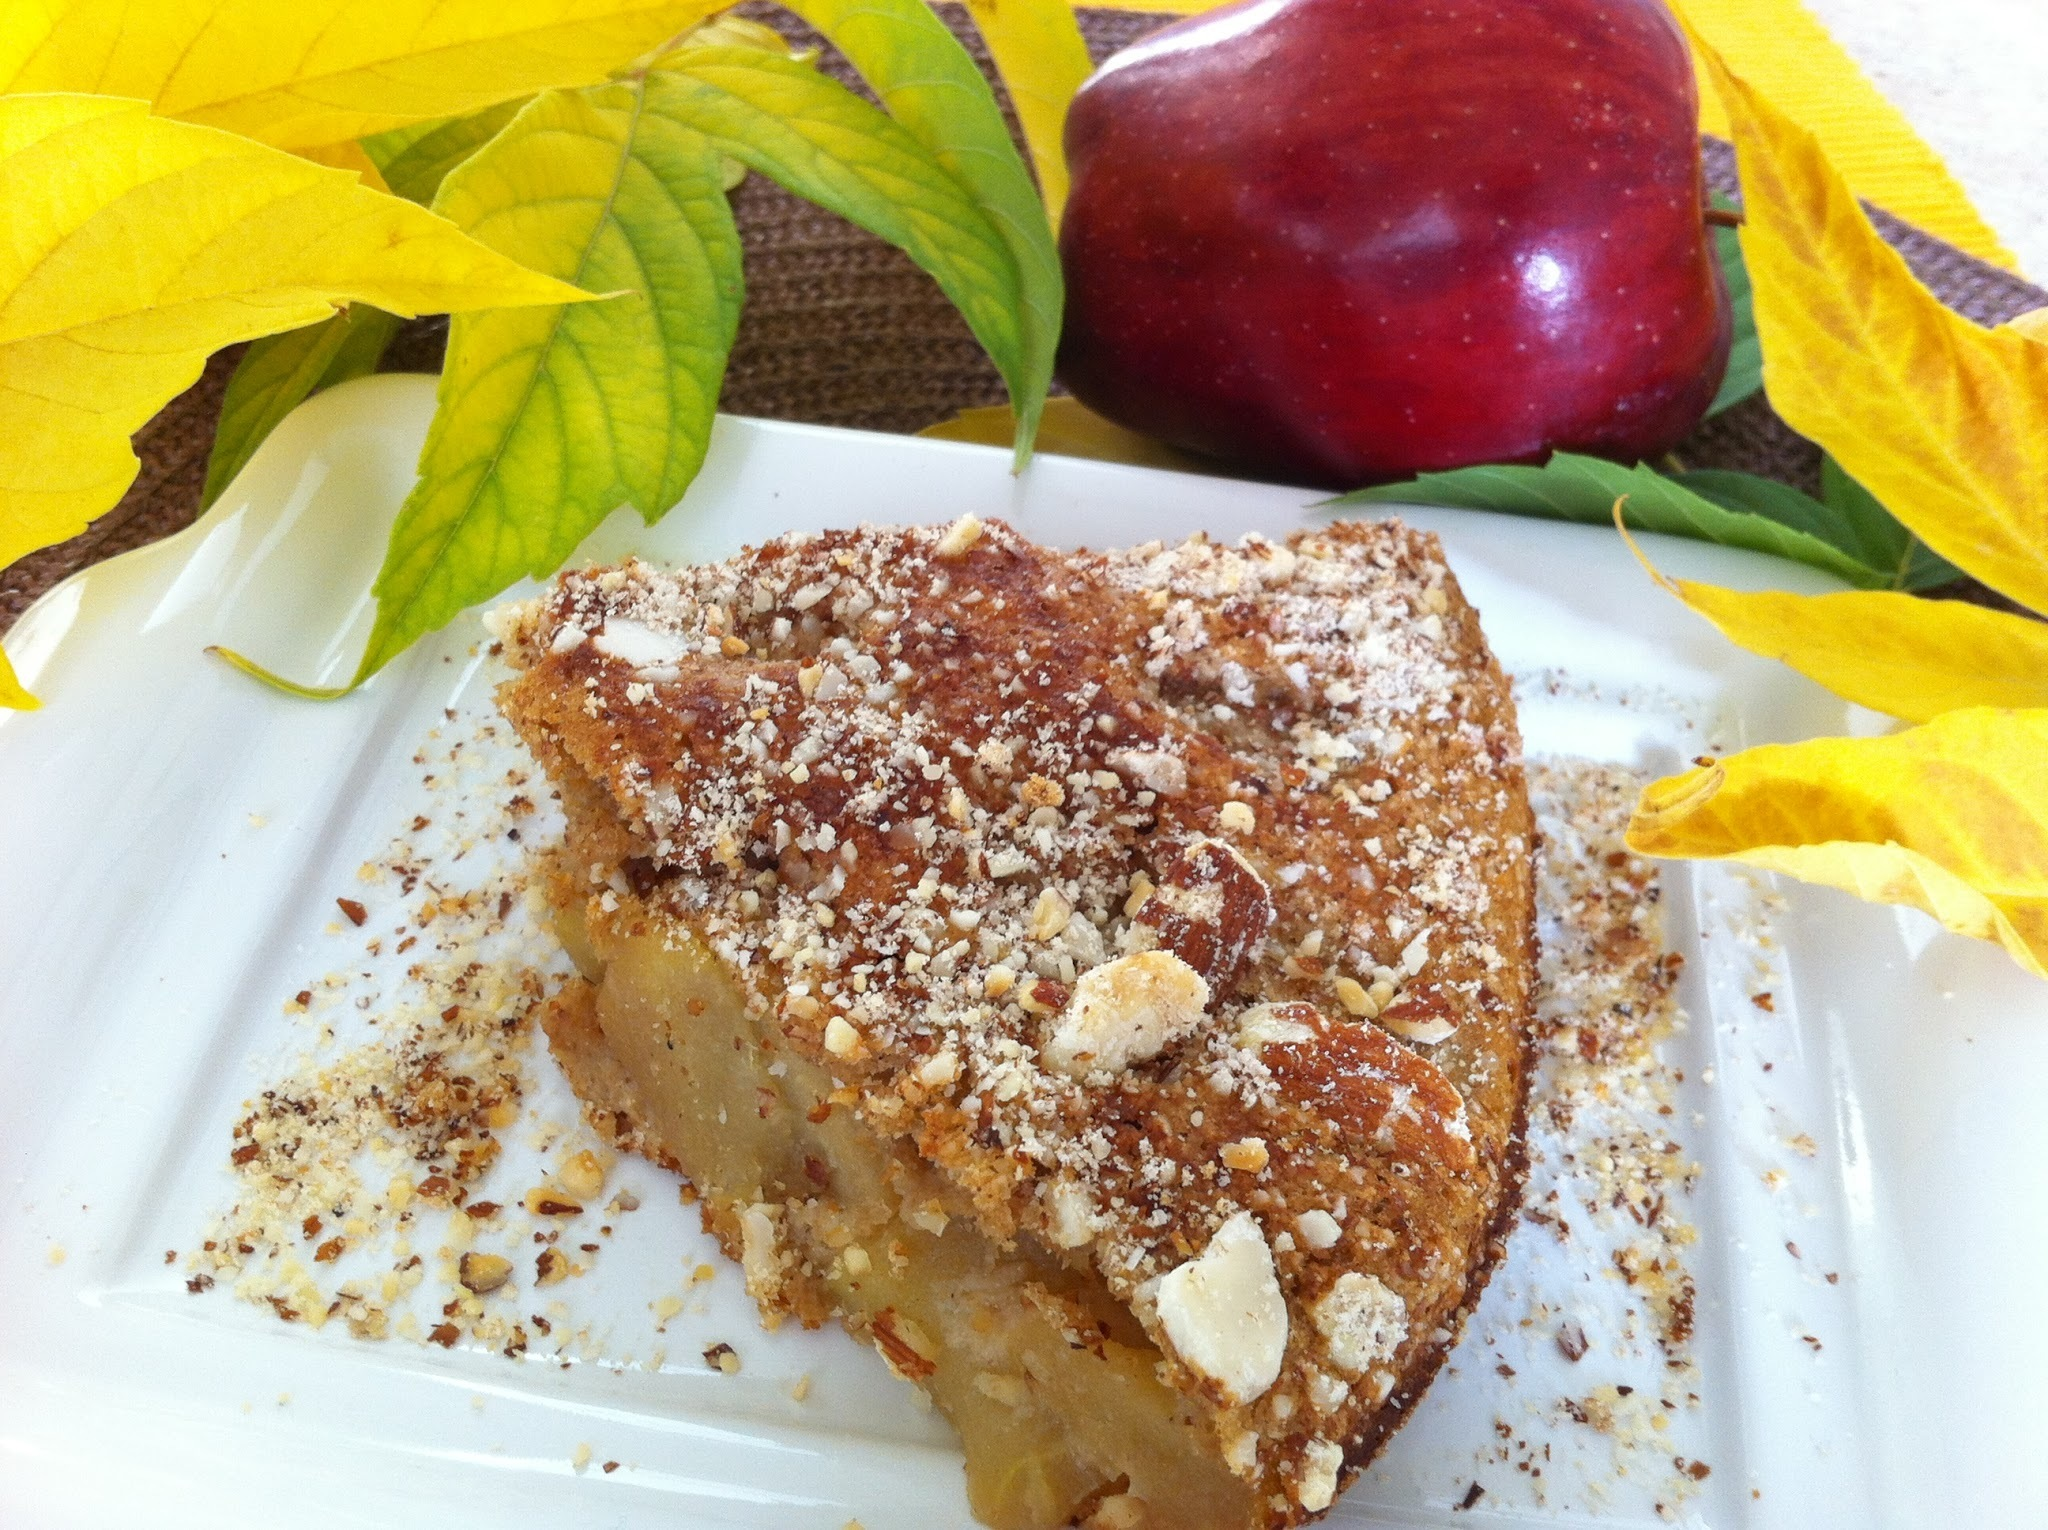 Apple Cake with Cinnamon and Almonds